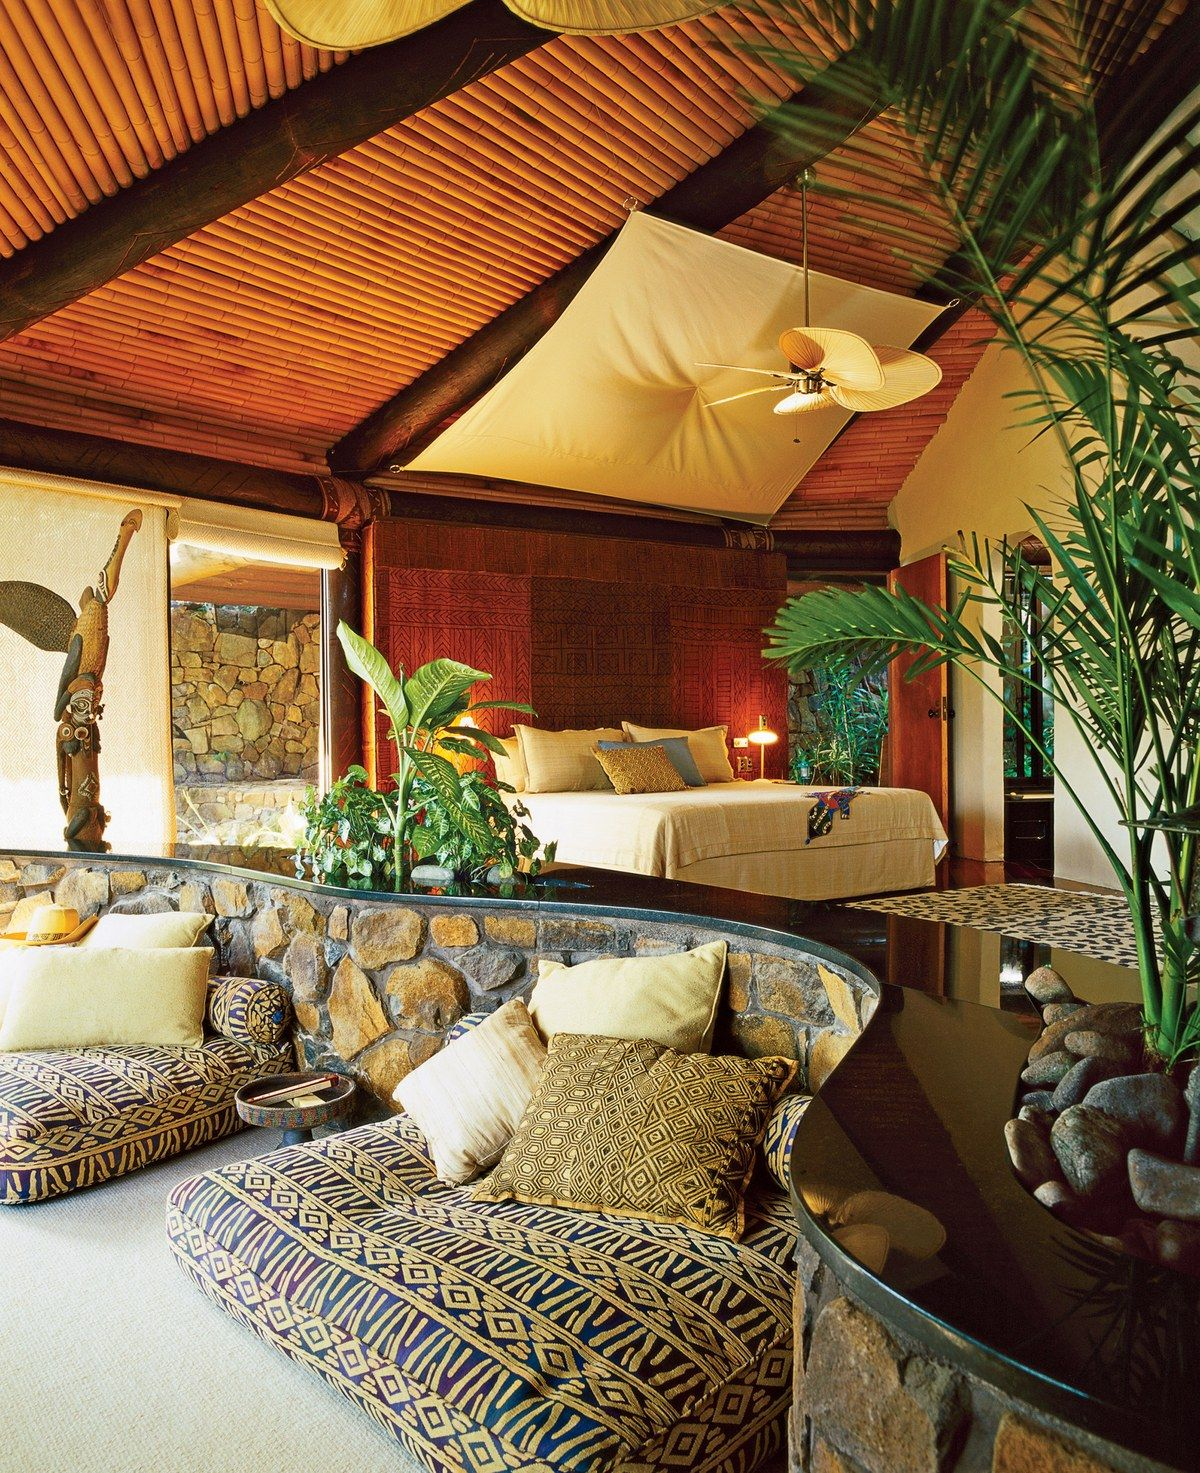 Hawaiian Home Design Ideas: Pin On Hawaii House Vibe